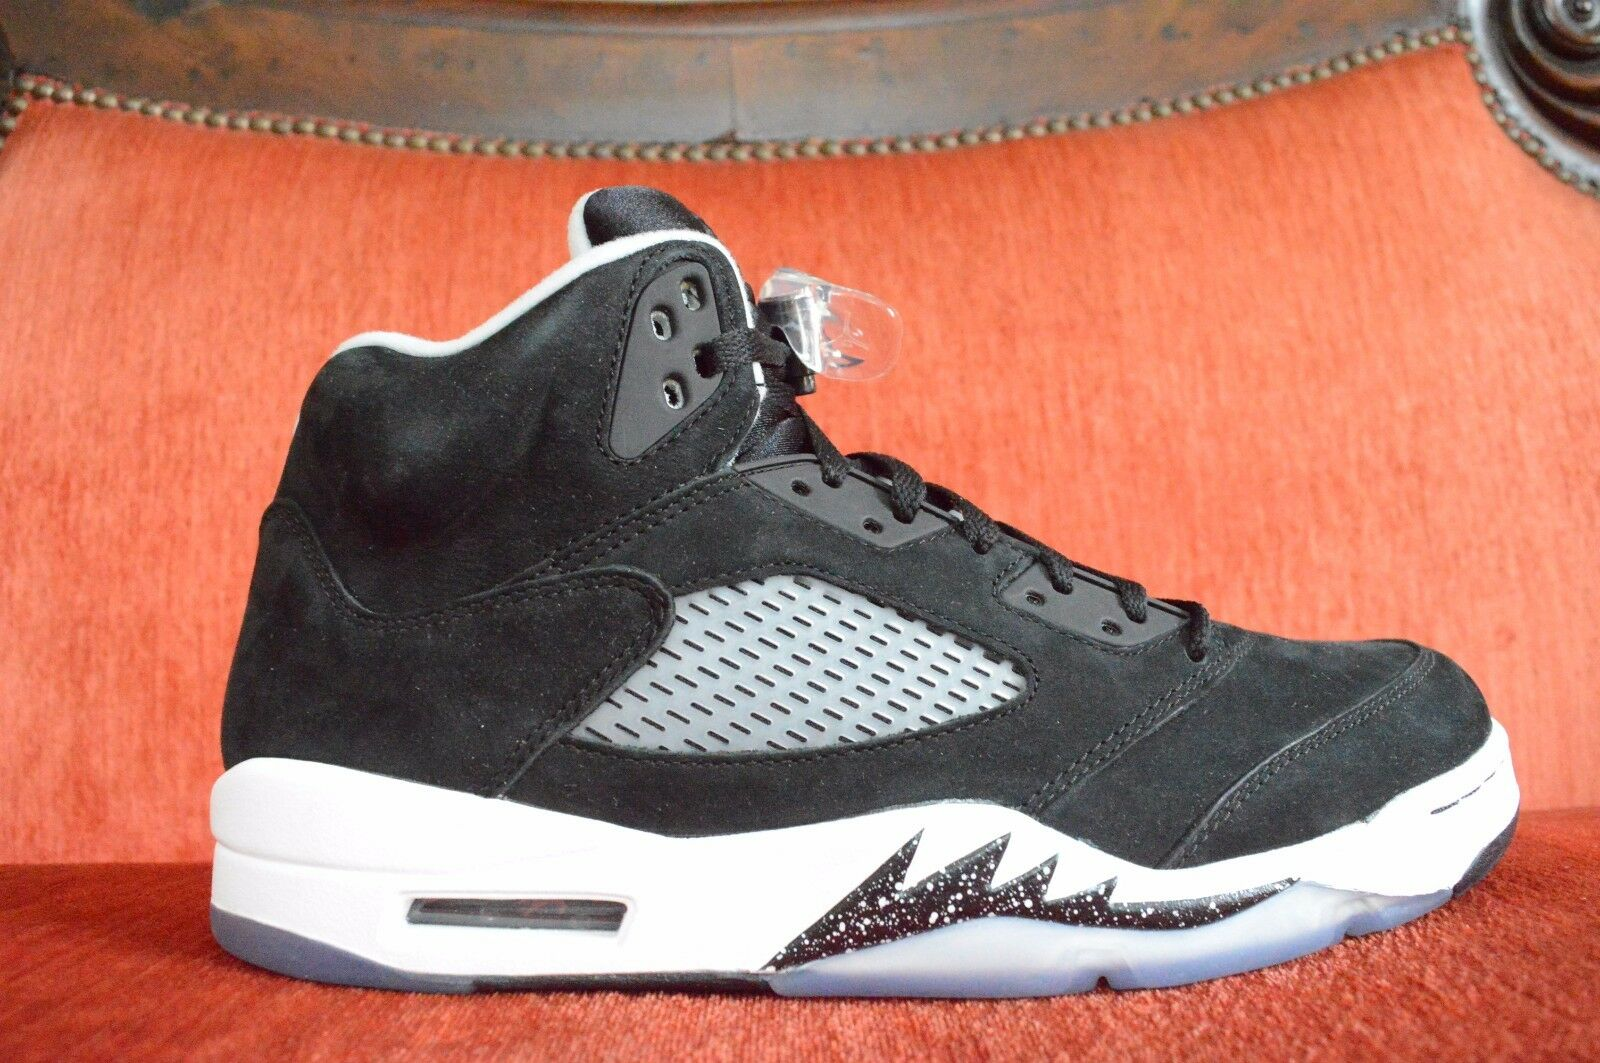 TRIED ON Nike Air Jordan V 5 Retro OREO BLACK WHITE WOLF COOL GREY 136027-035